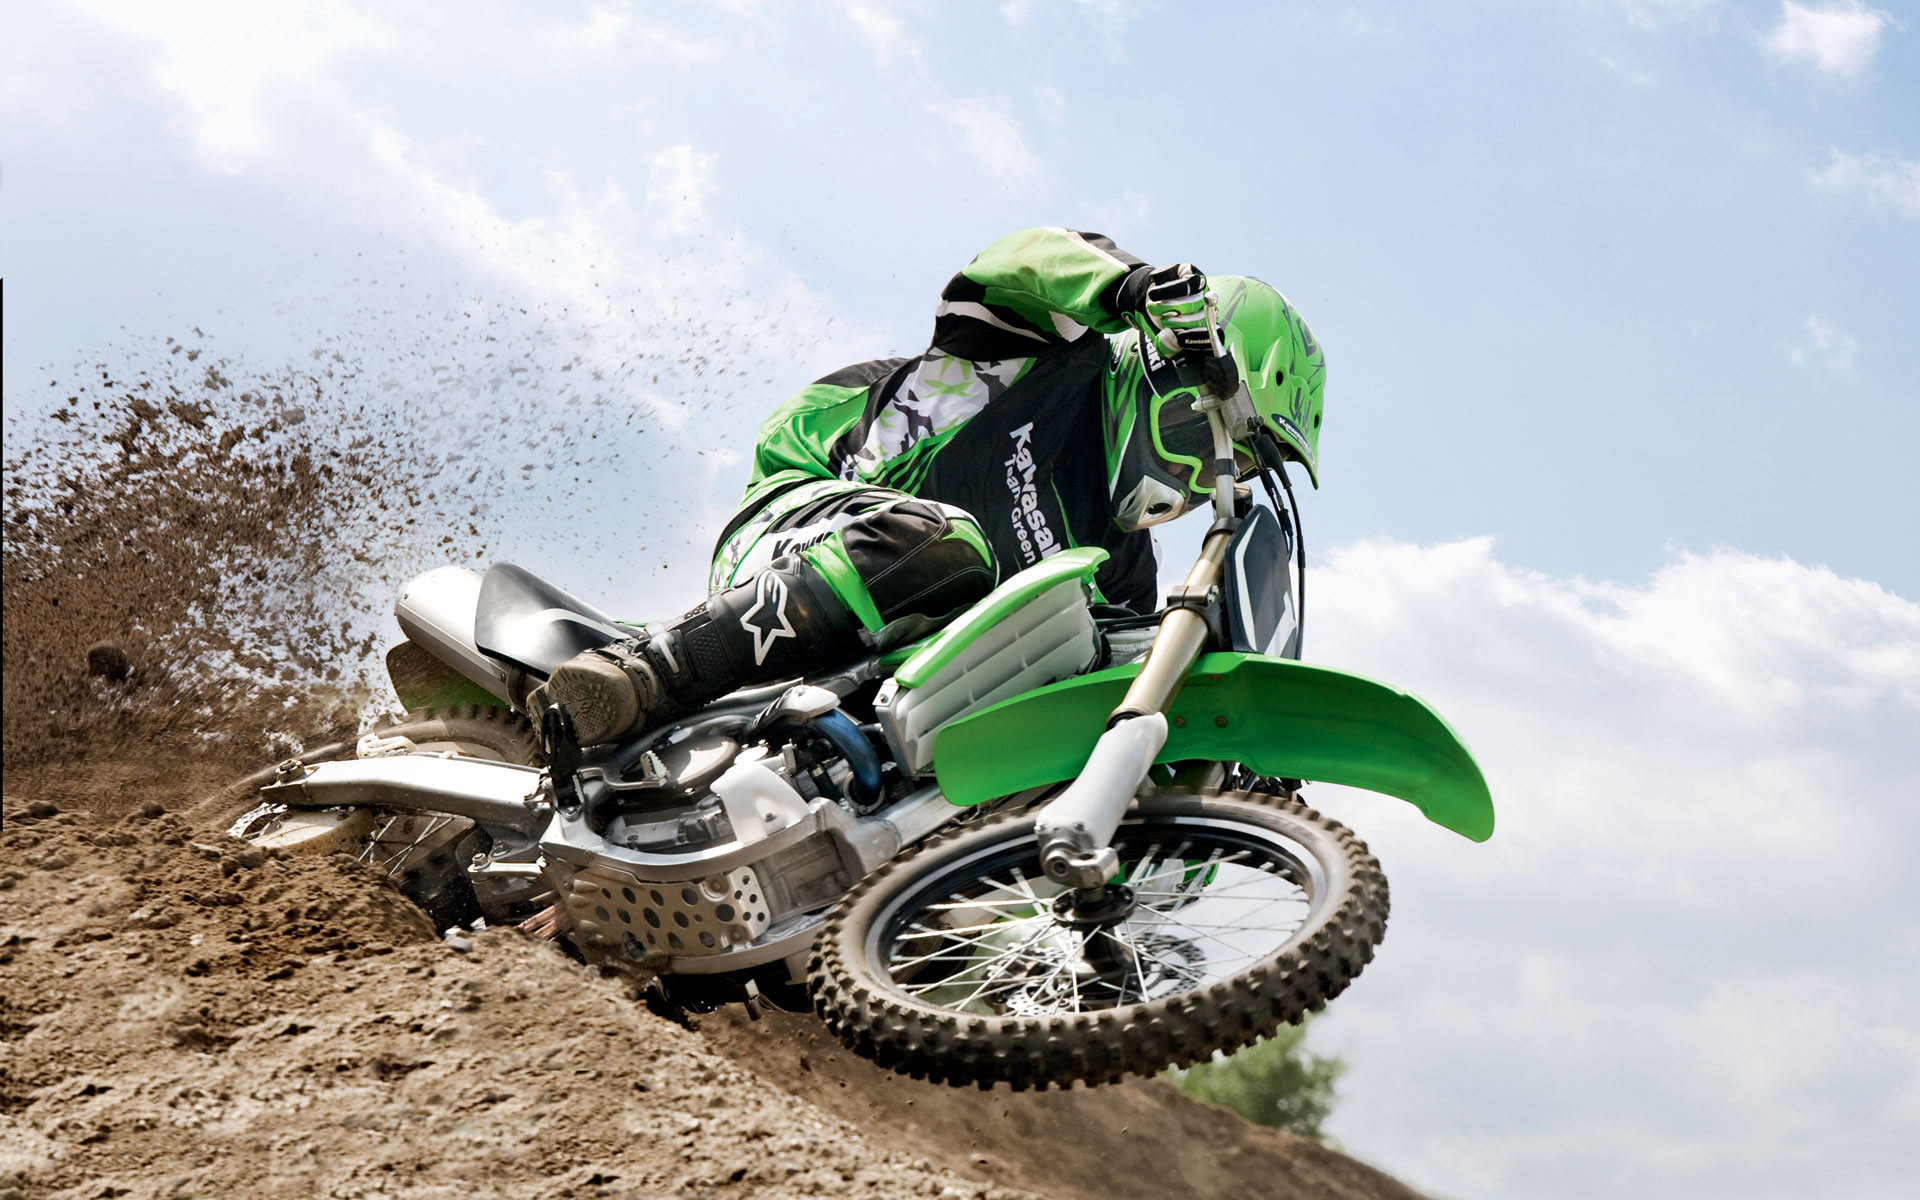 motocross wallpapers hd yapa   Taringa 1920x1200